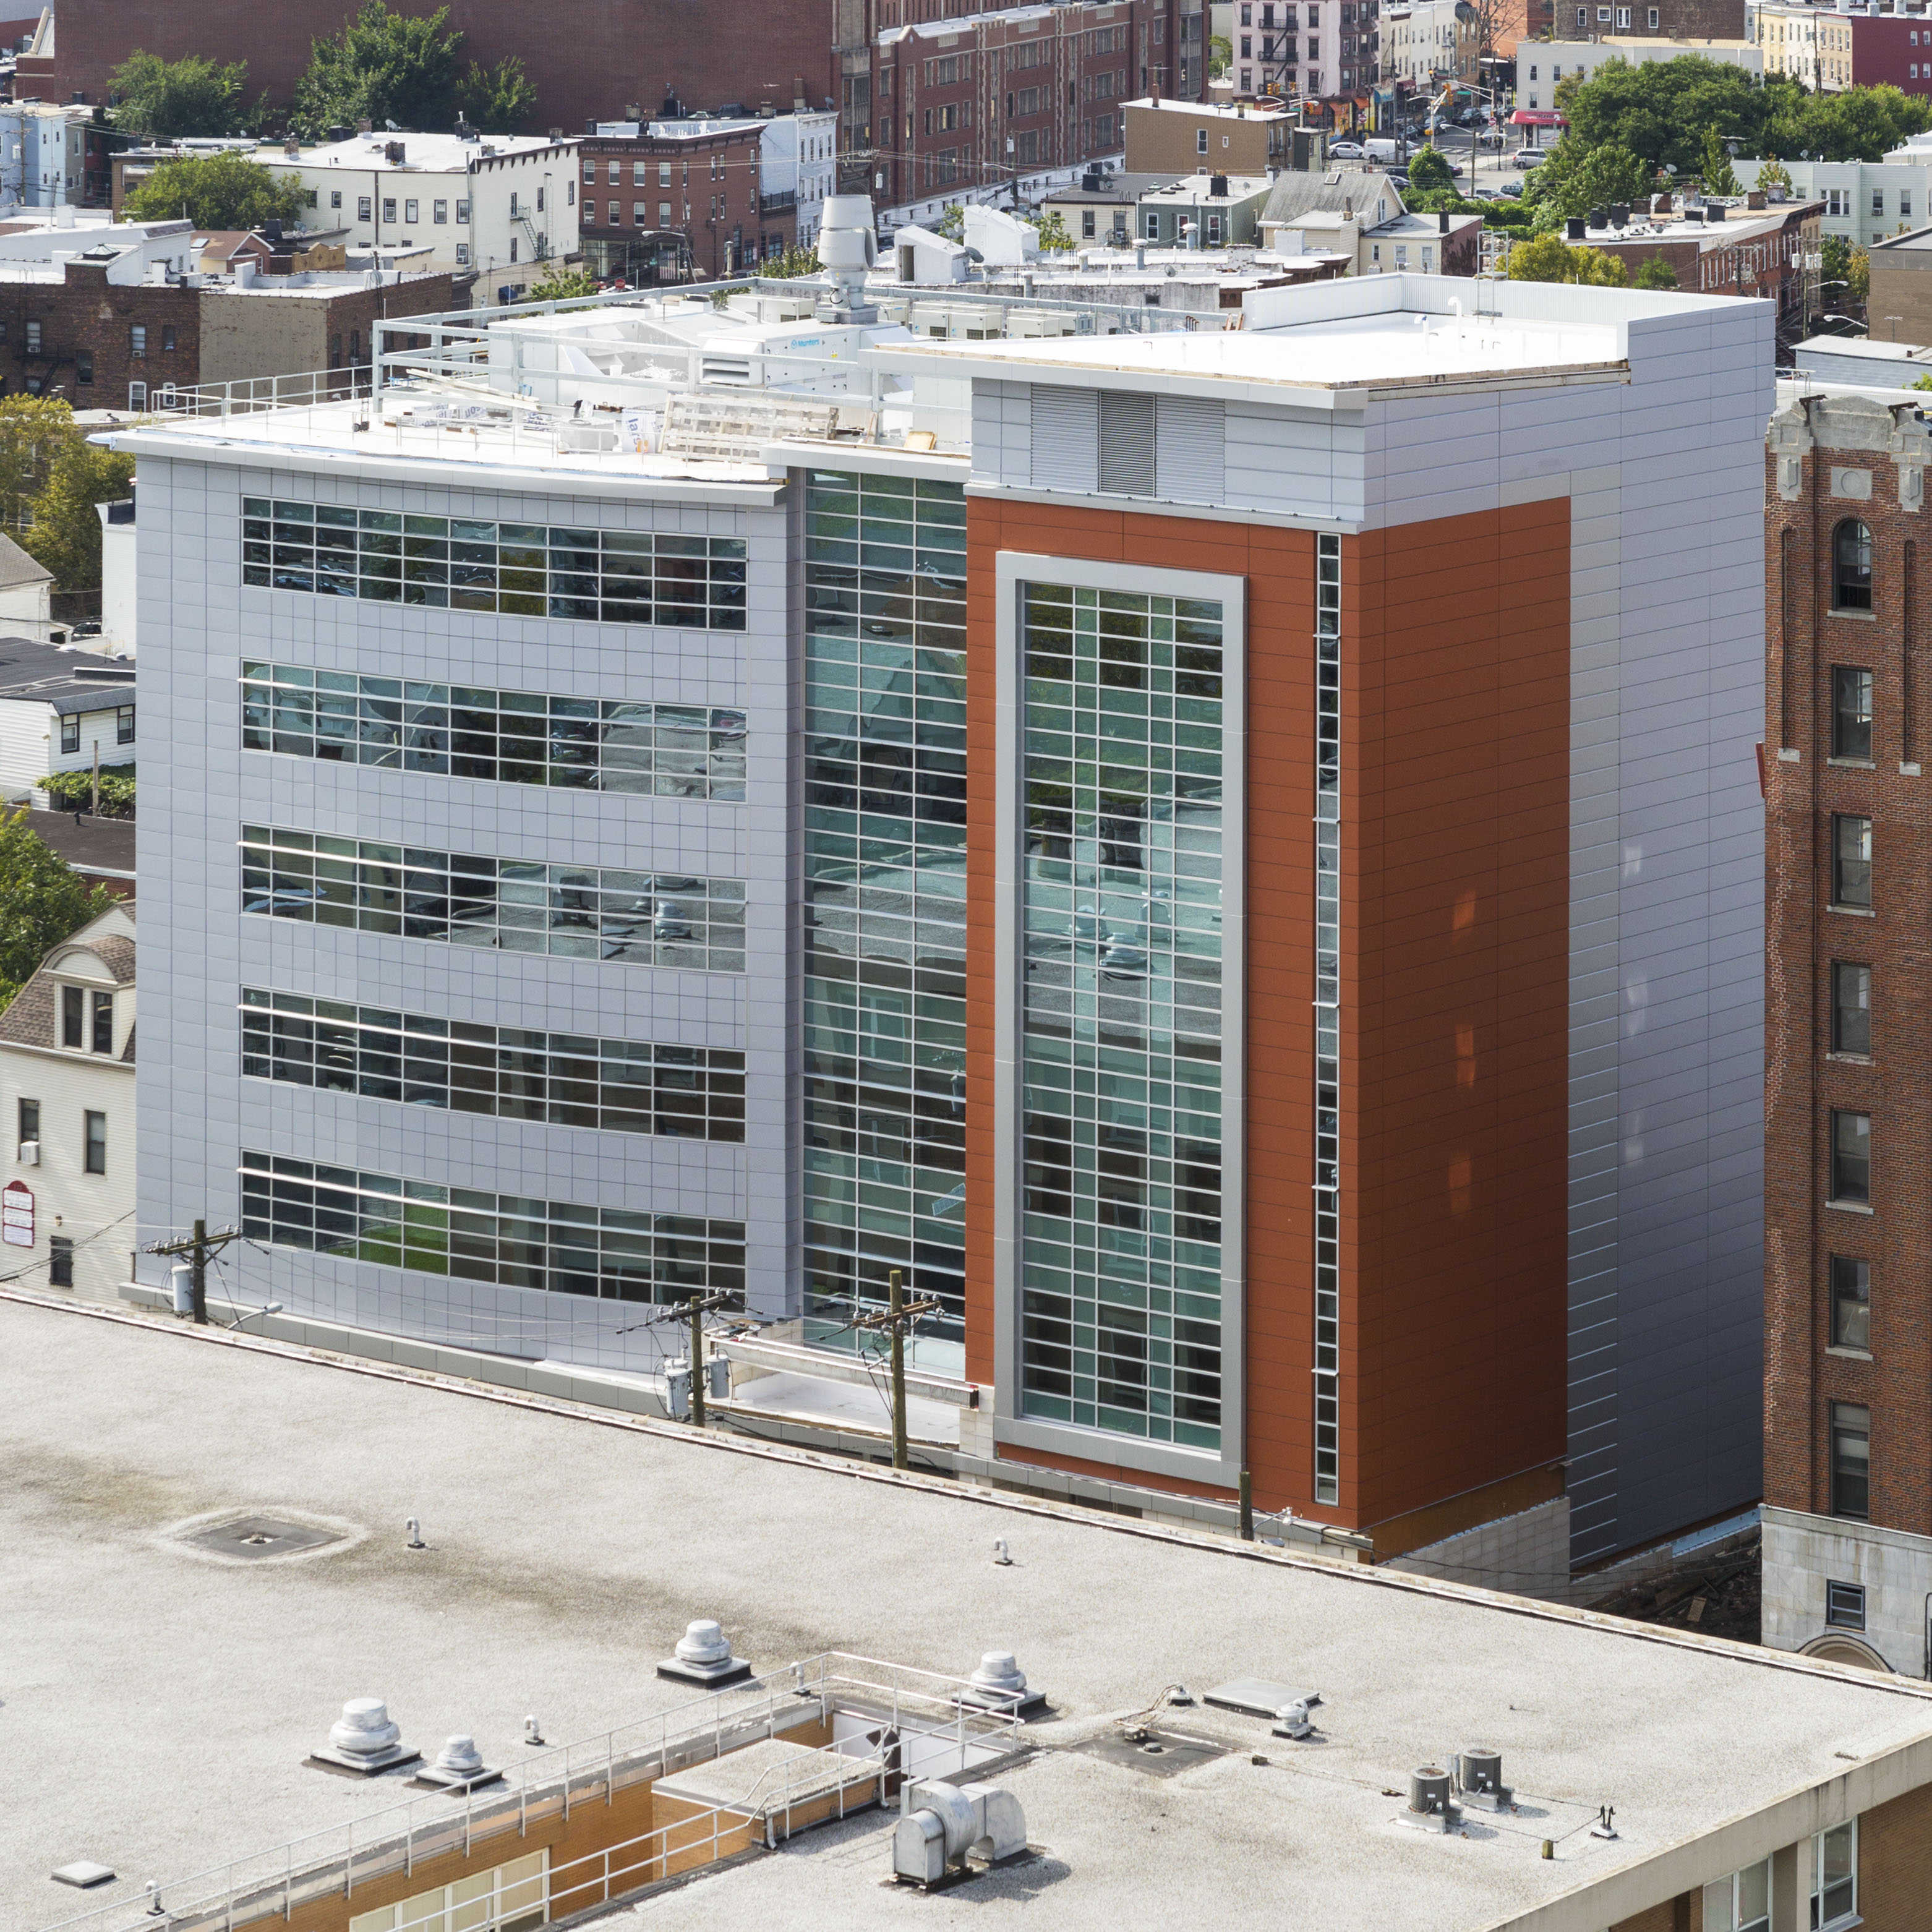 Stem School In Nj: Hudson County Community College Opens New $25.9 Million